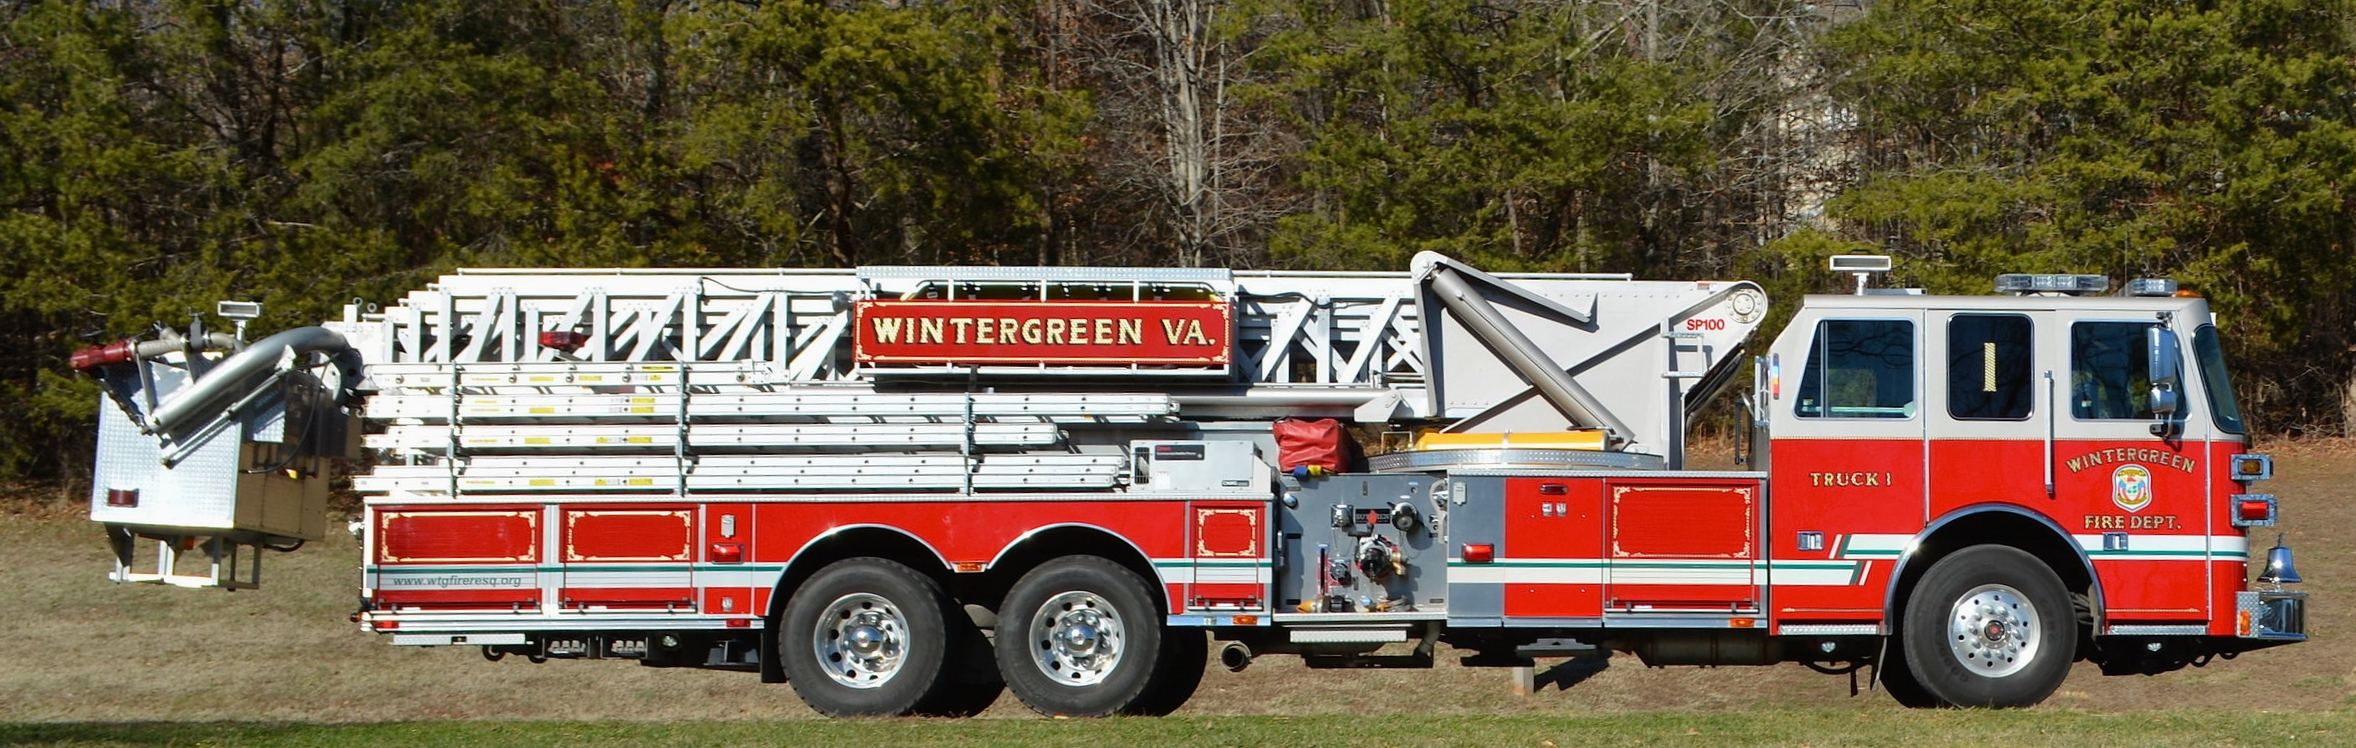 Truck 61  - 2008 Sutphen SP 100 Monarch Chassis, 2000 gpm Hale Pump, Detroit Series 60 515hp motor, Remote control nozzle, All-Wheel Drive rear on demand, 100% LED lighting, 500 gallons of water, Automatic Snow Chains.